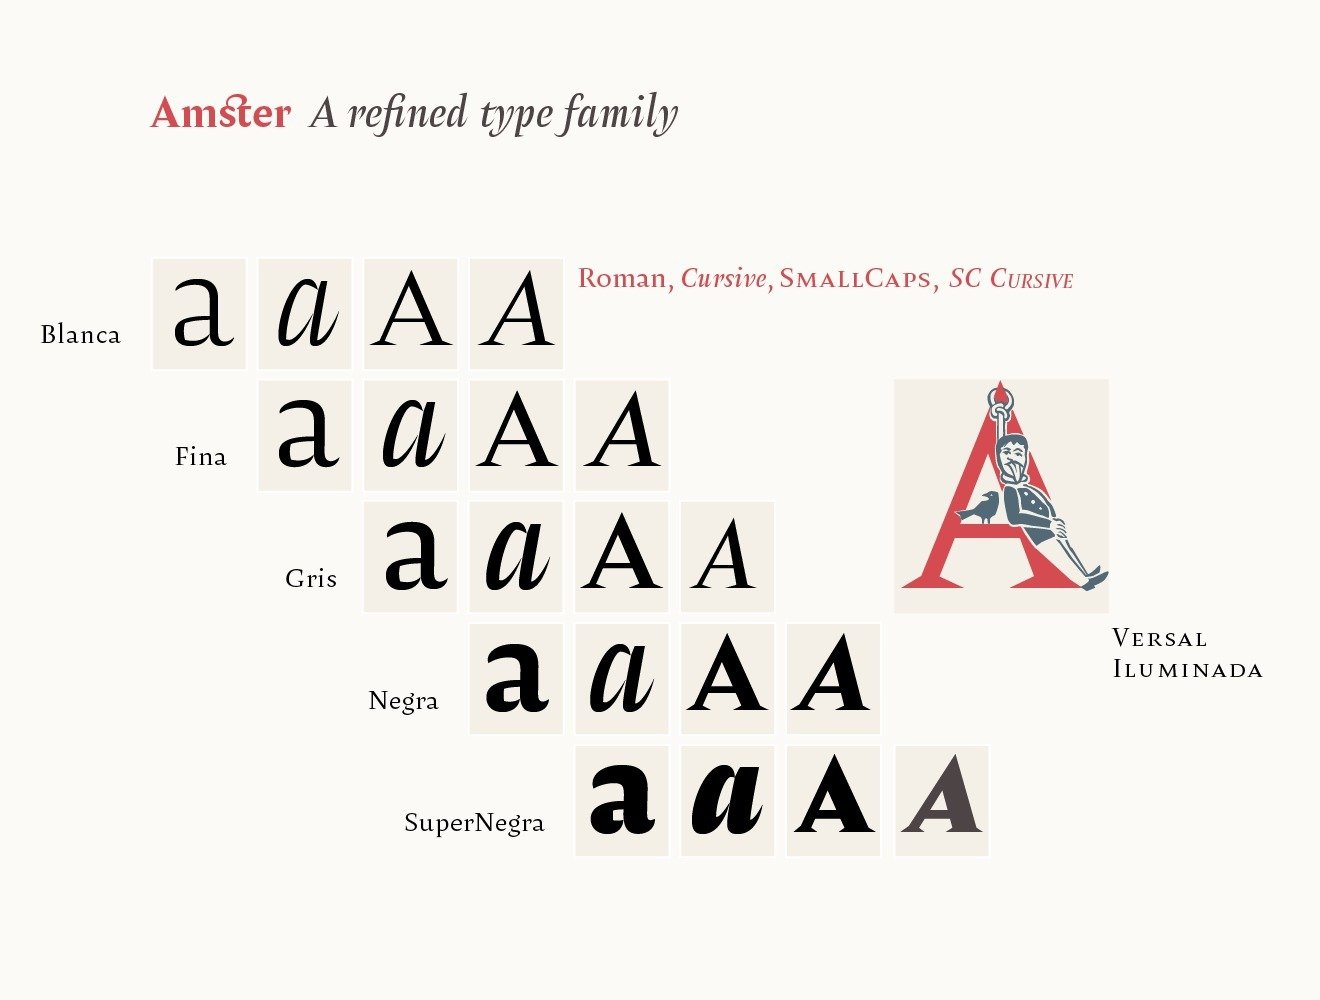 Amster is an energetic & refined type created by Francisco Gálvez, with a sharp concept on how refinement & austerity can meet harmoniously. Amster can build a text that is highly readable and friendly. It has five weights of roman & cursive both with smallcaps and fully equipped with all OT sorts, plus 2 kinds of swashes, smart ornaments, and a wonderful set of illuminated initials. Its style makes Amster very versatile, allowing for a wide range of uses: screen to print, small text to display, science to poetry. Read more at PampaType.com.